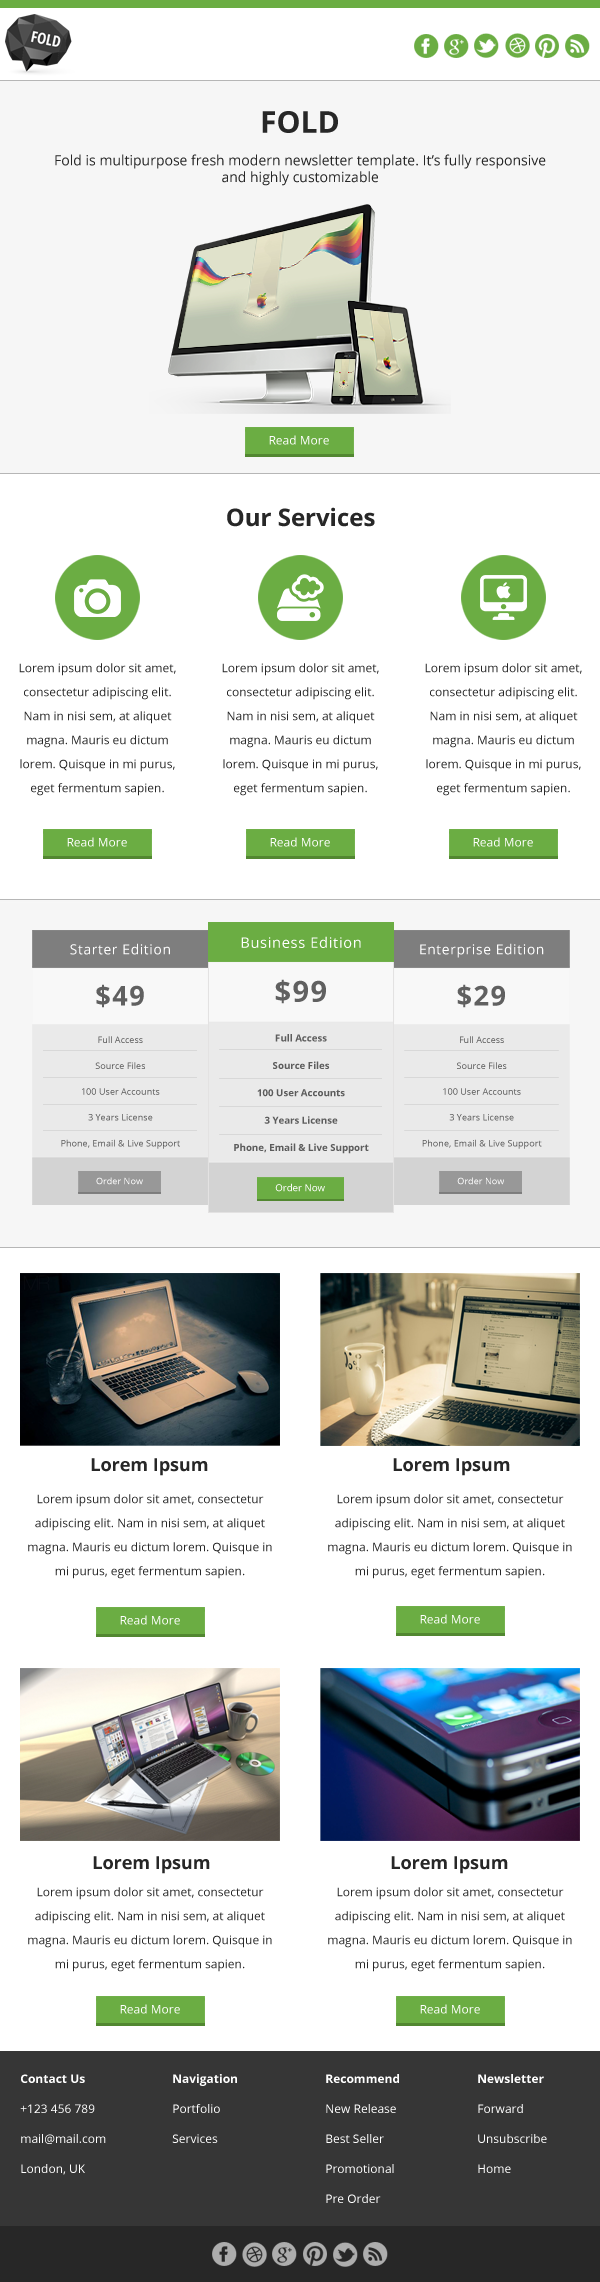 FOLD - Responsive Email Template